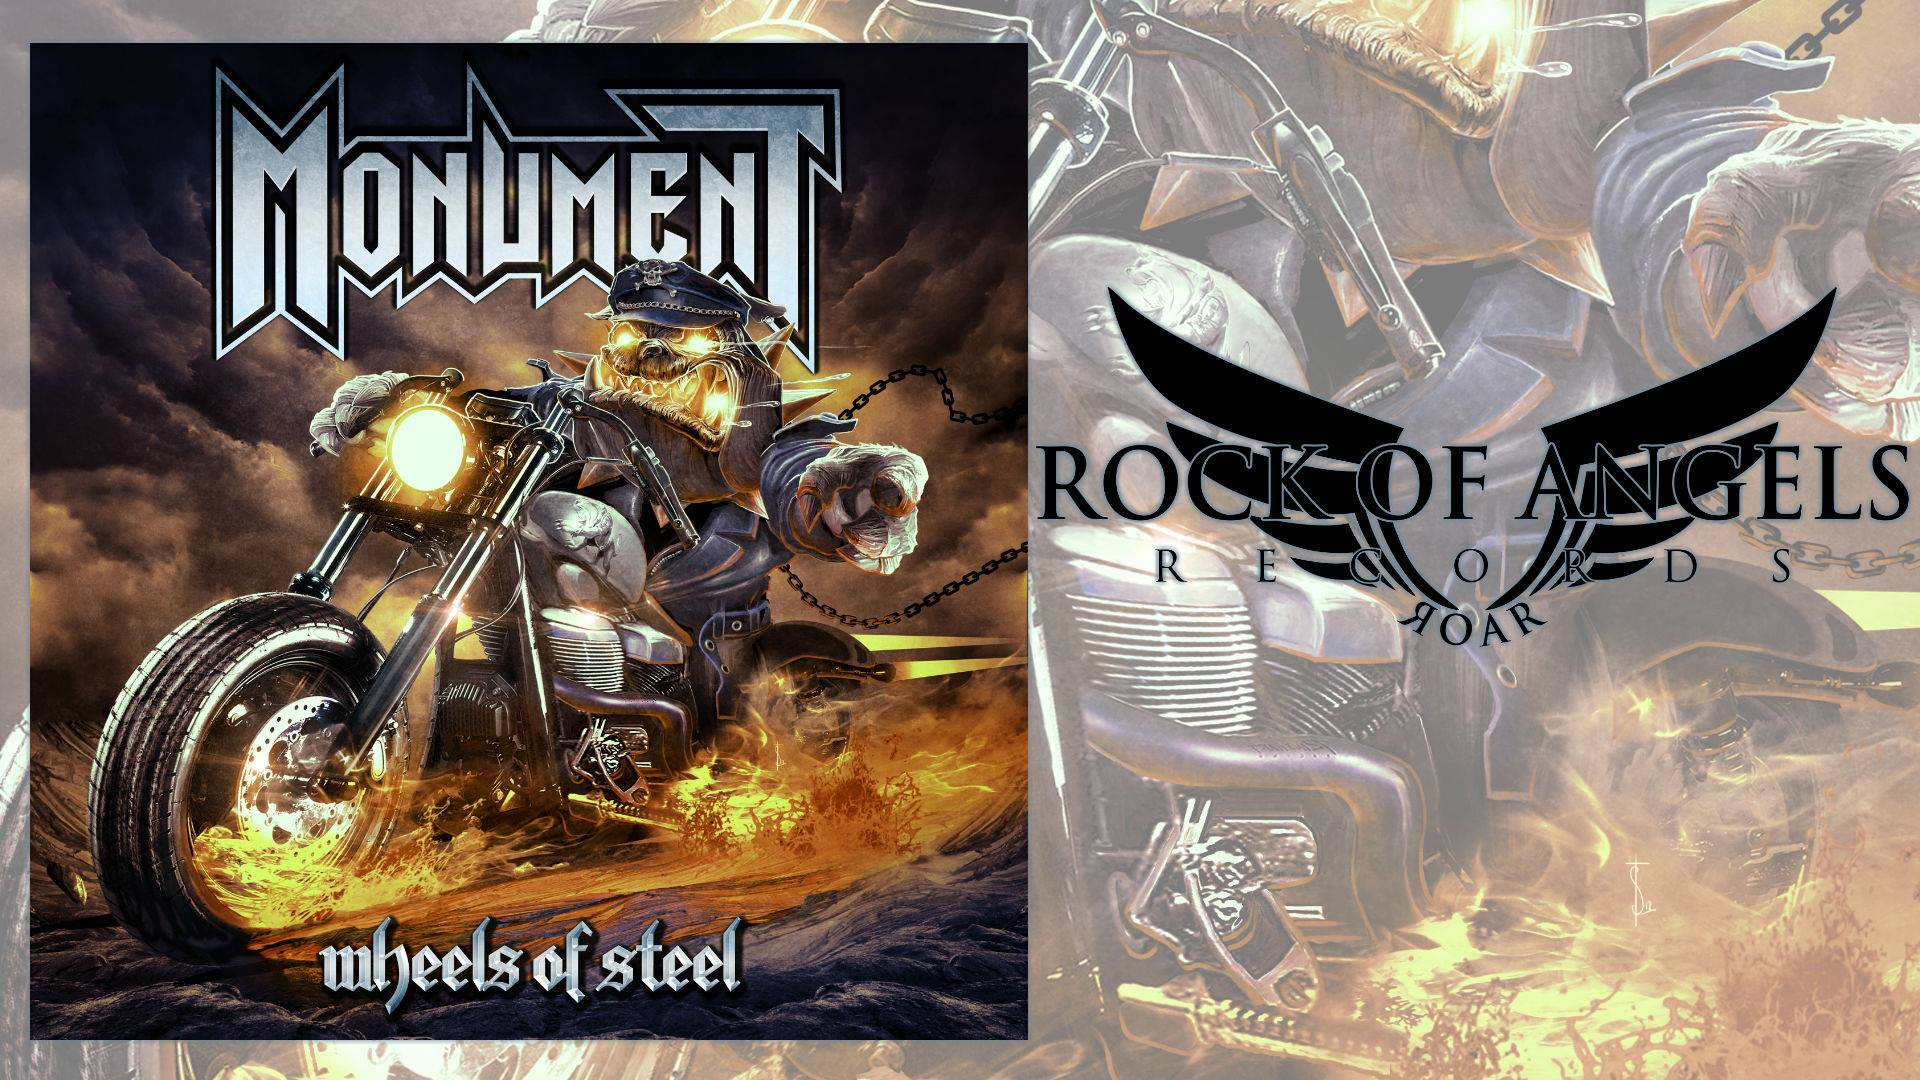 MONUMENT Wheels Of Steel (2018) Heavy Metal Angleterre Nouveau clip 43592810